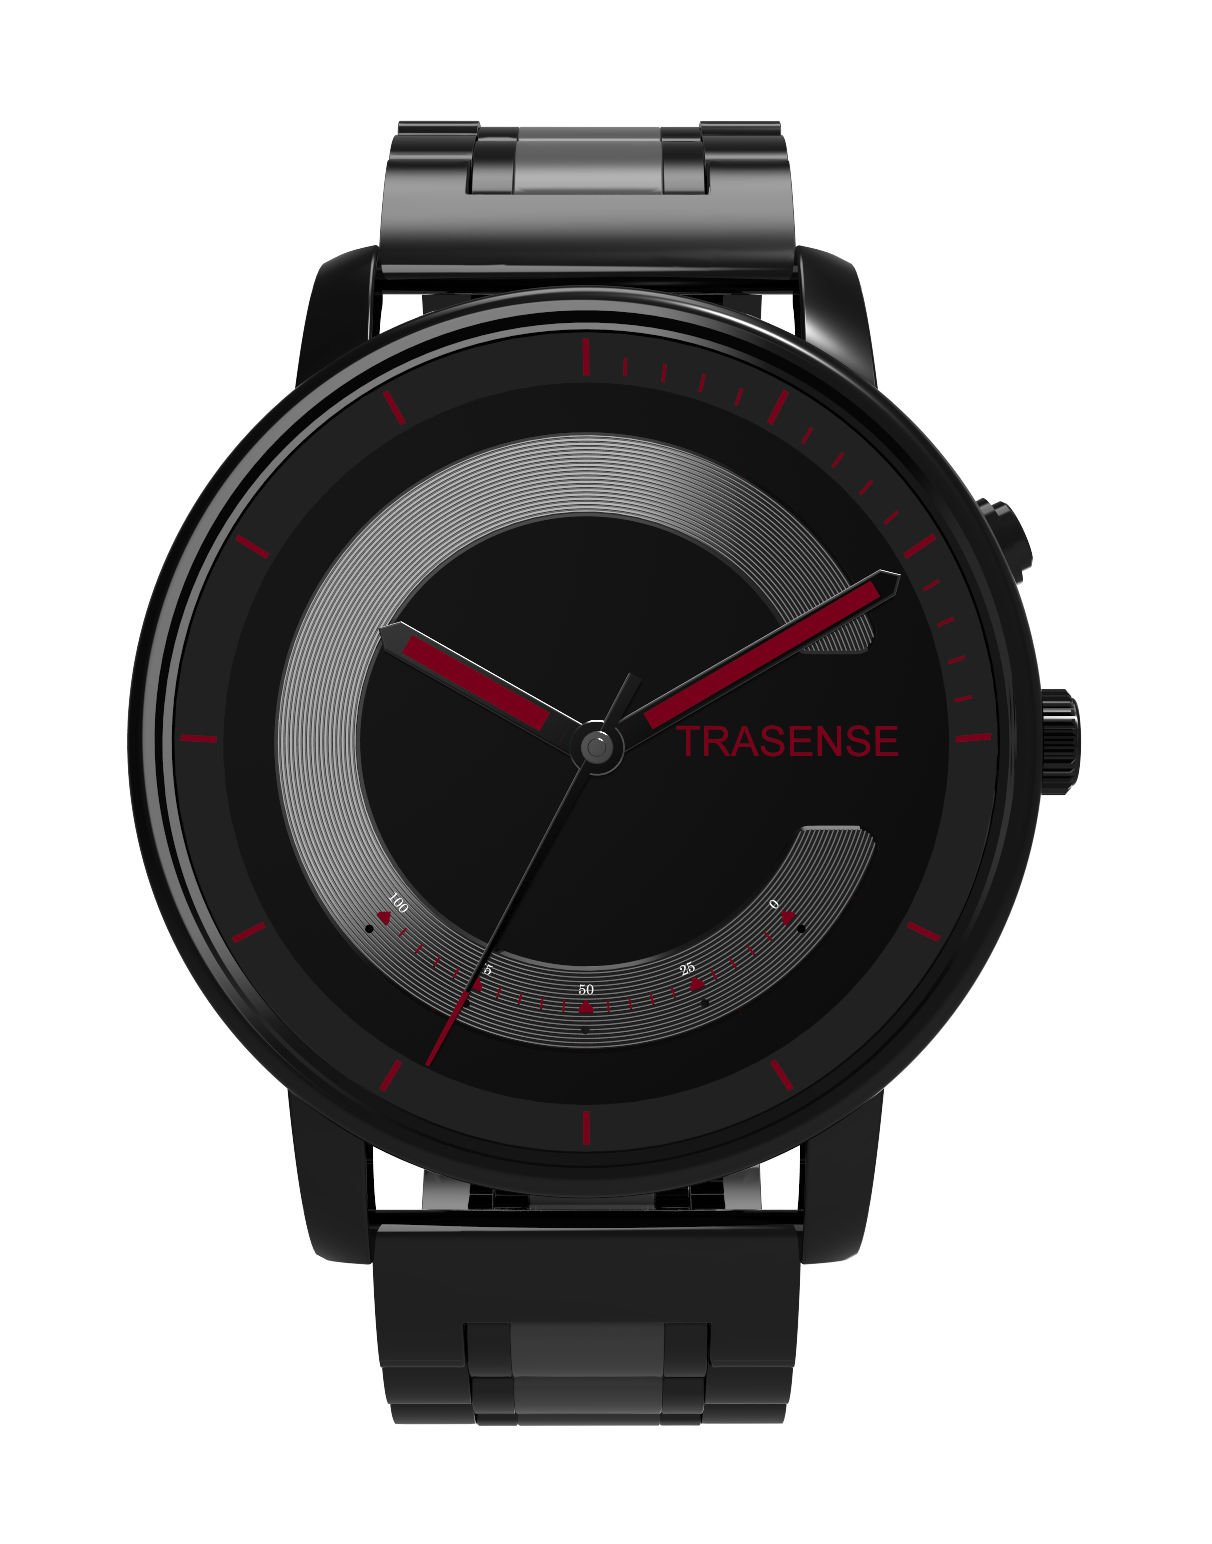 Trasense Hybrid Smartwatch with Stainless Steel Strap for IOS and Android Phone (Red Dial Stainless Steel Strap) by Trasense